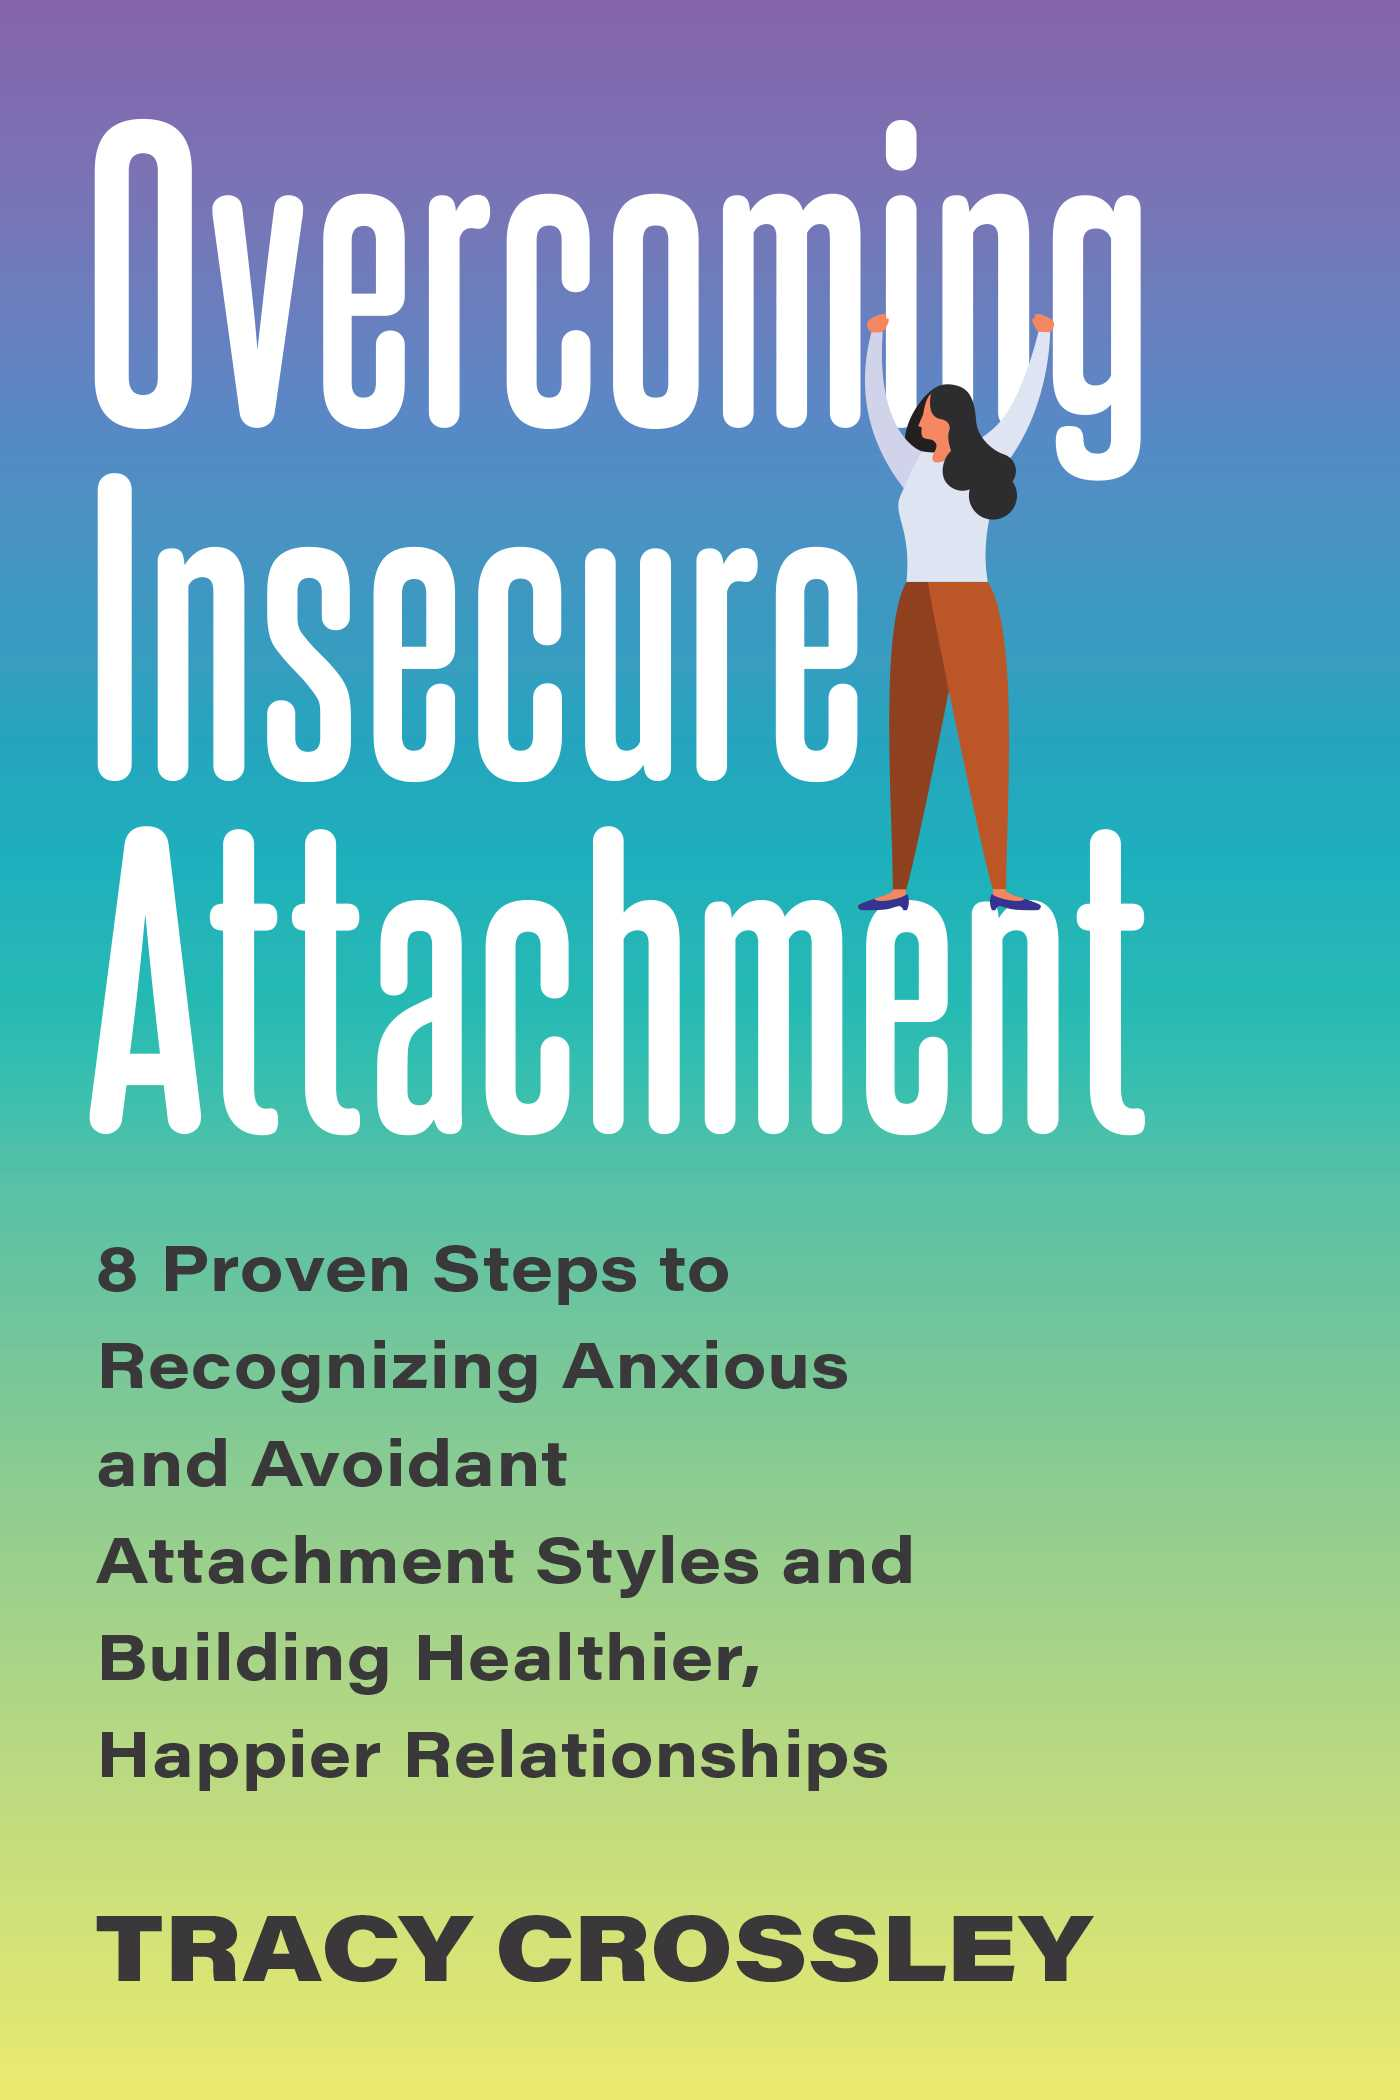 Attachment styles relationship Attachment Styles